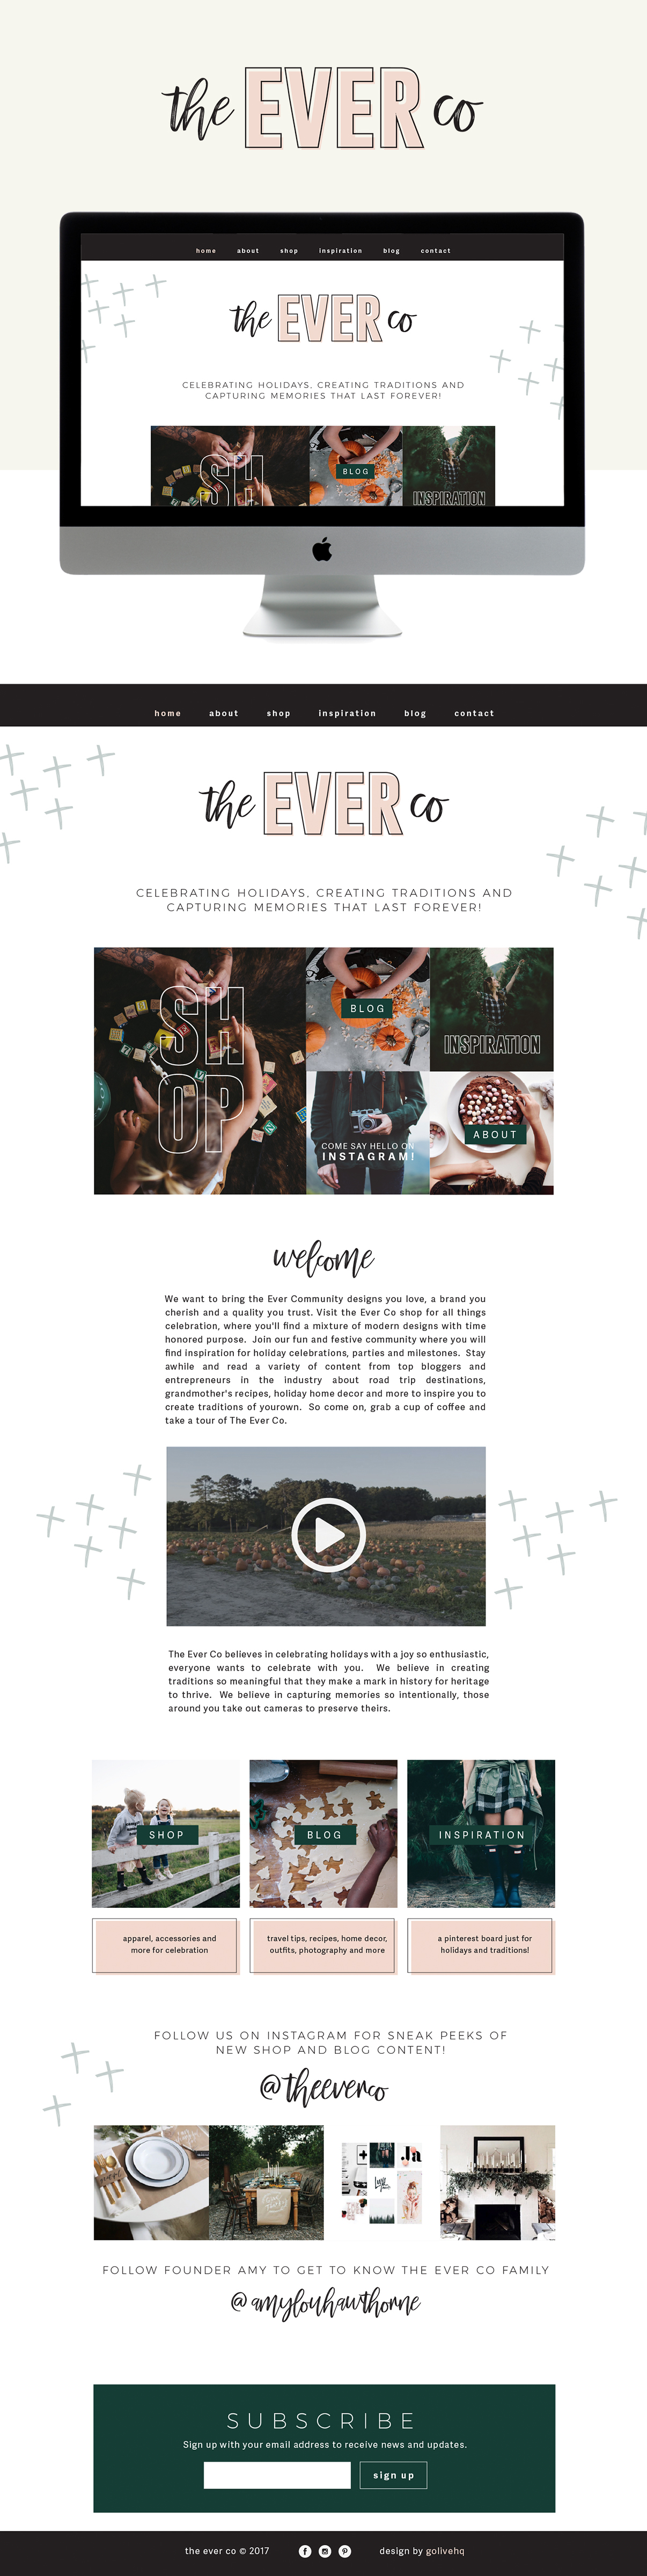 The Ever Co Is LIVE on Squarespace | By Go Live HQ